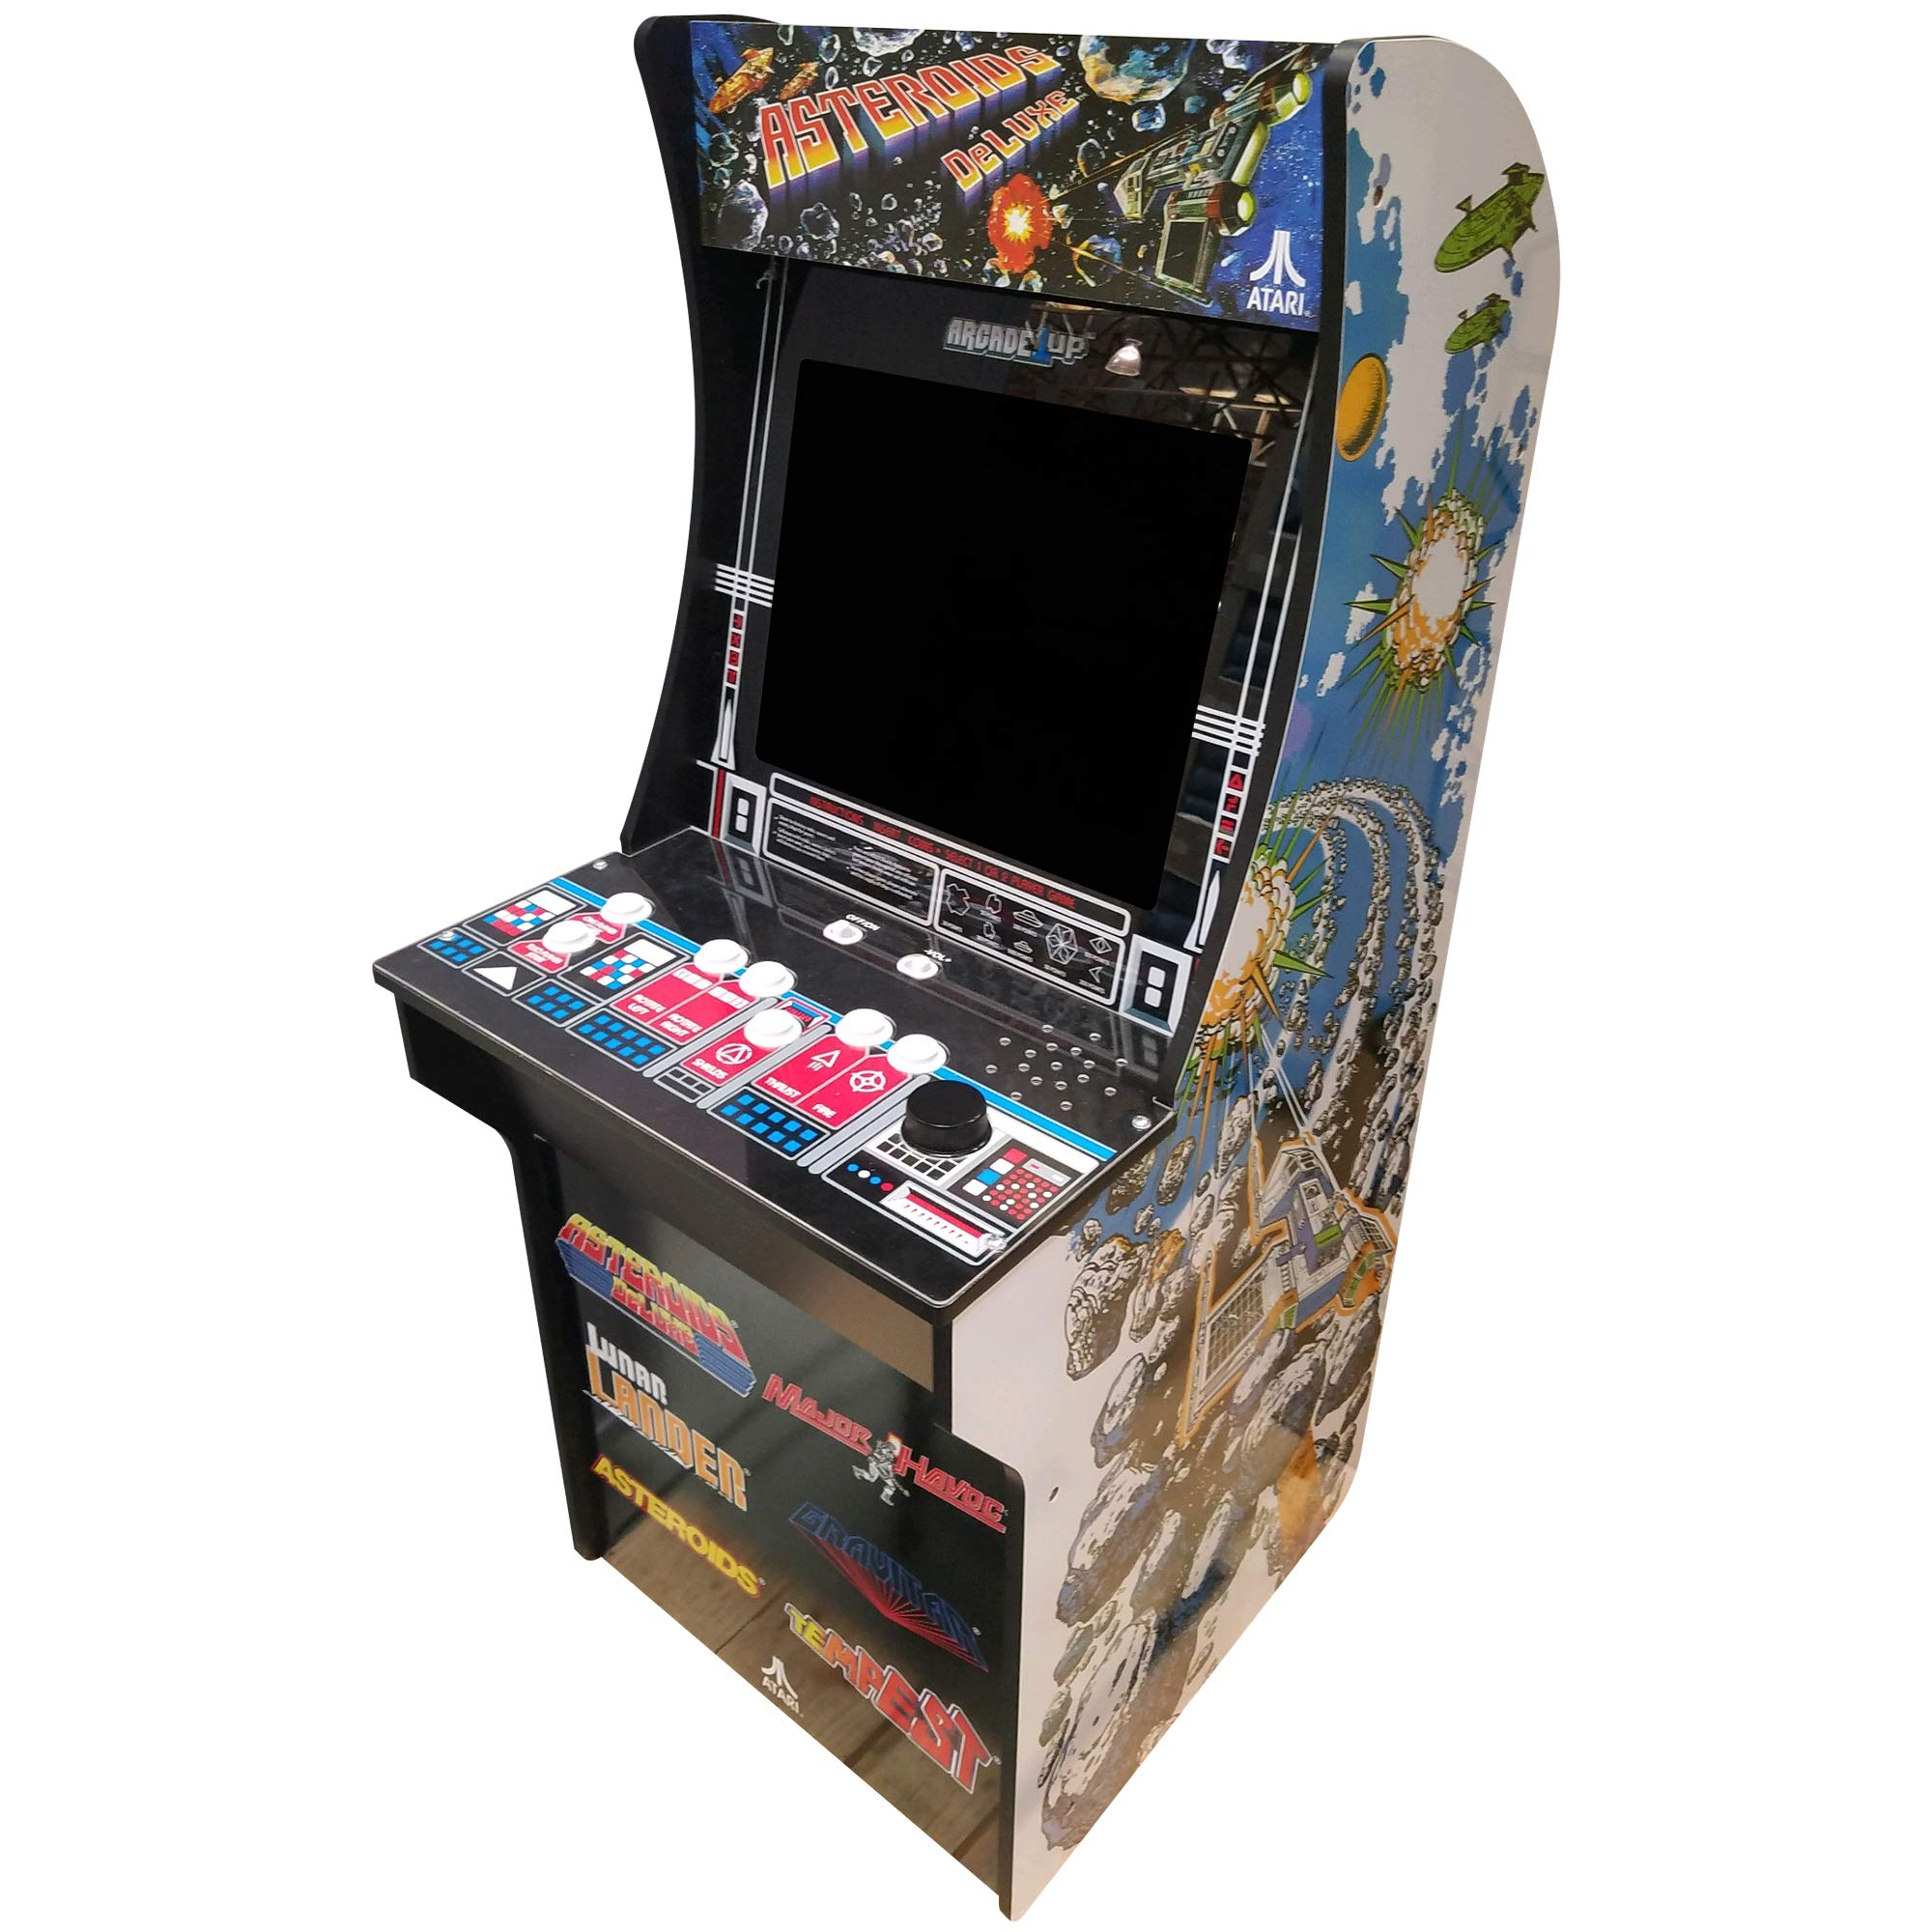 Creative Arcades 6 in 1 Atari Cabinet Arcade 1Up Machine for Home | 6 Classic Games Pre-Installed | Plug and Play - Fully Assembled | 1 - 2 Player | Stool Included | 17'' Screen | Coinless Operation by Creative Outdoor Distributor (Image #2)